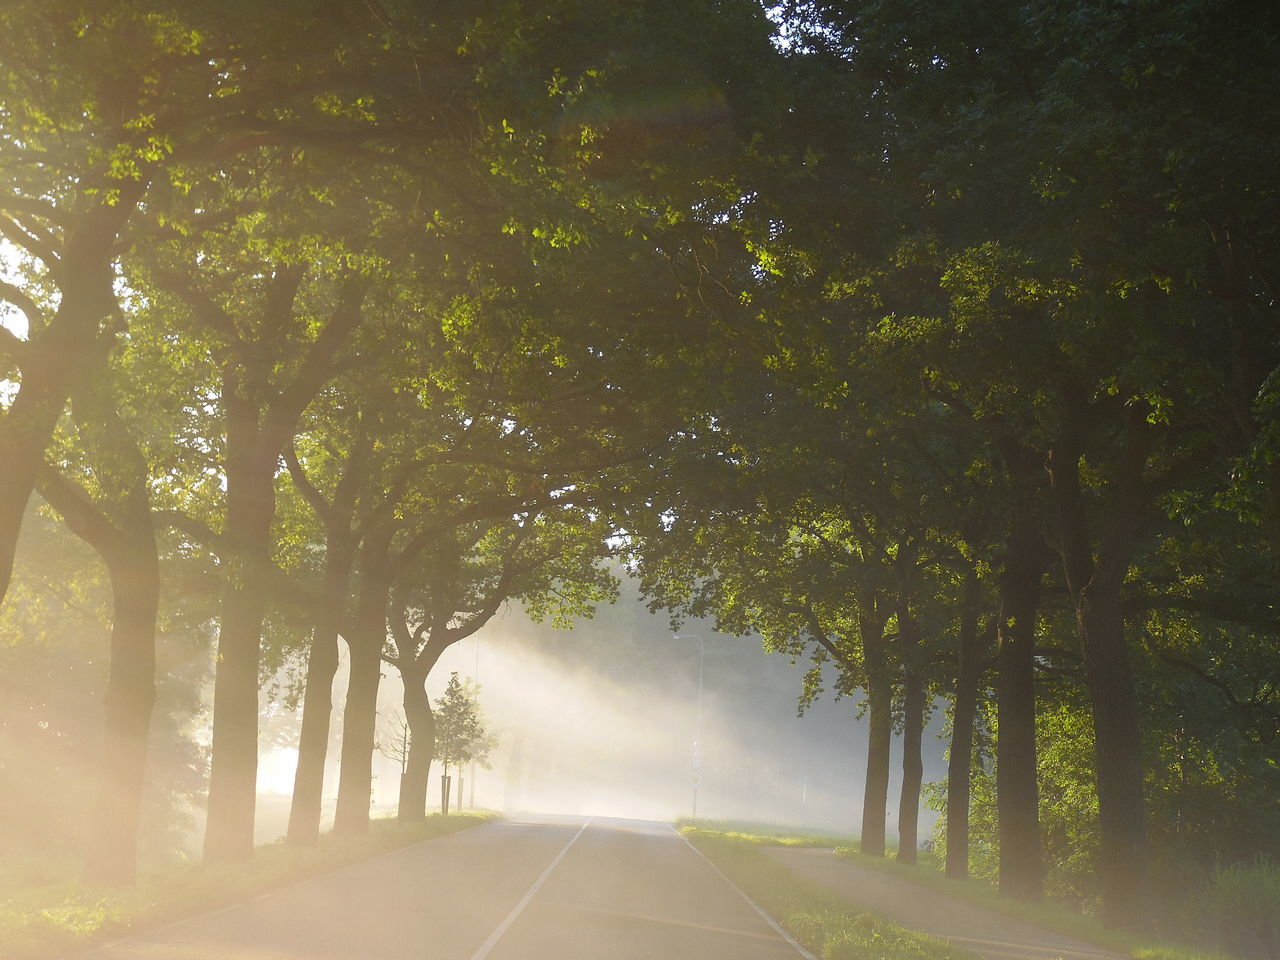 Misty Morning Misty Mornings Morning Light Misty Sunrise Misty Morning Fog Beautiful Time For Nature Country Road Outdoors Photography Beauty In Nature Beautiful Scenery Eyem Best Photo Bestoftheday Eyemcaptured Capture The Moment Dutch Landscapes Nature At Its Finest Popular Photos Urban Nature Best EyeEm Shot Sunrays Sunrays Through The Branches Sunrays Through The Leaves Dutch Countyside Dutch Countryside